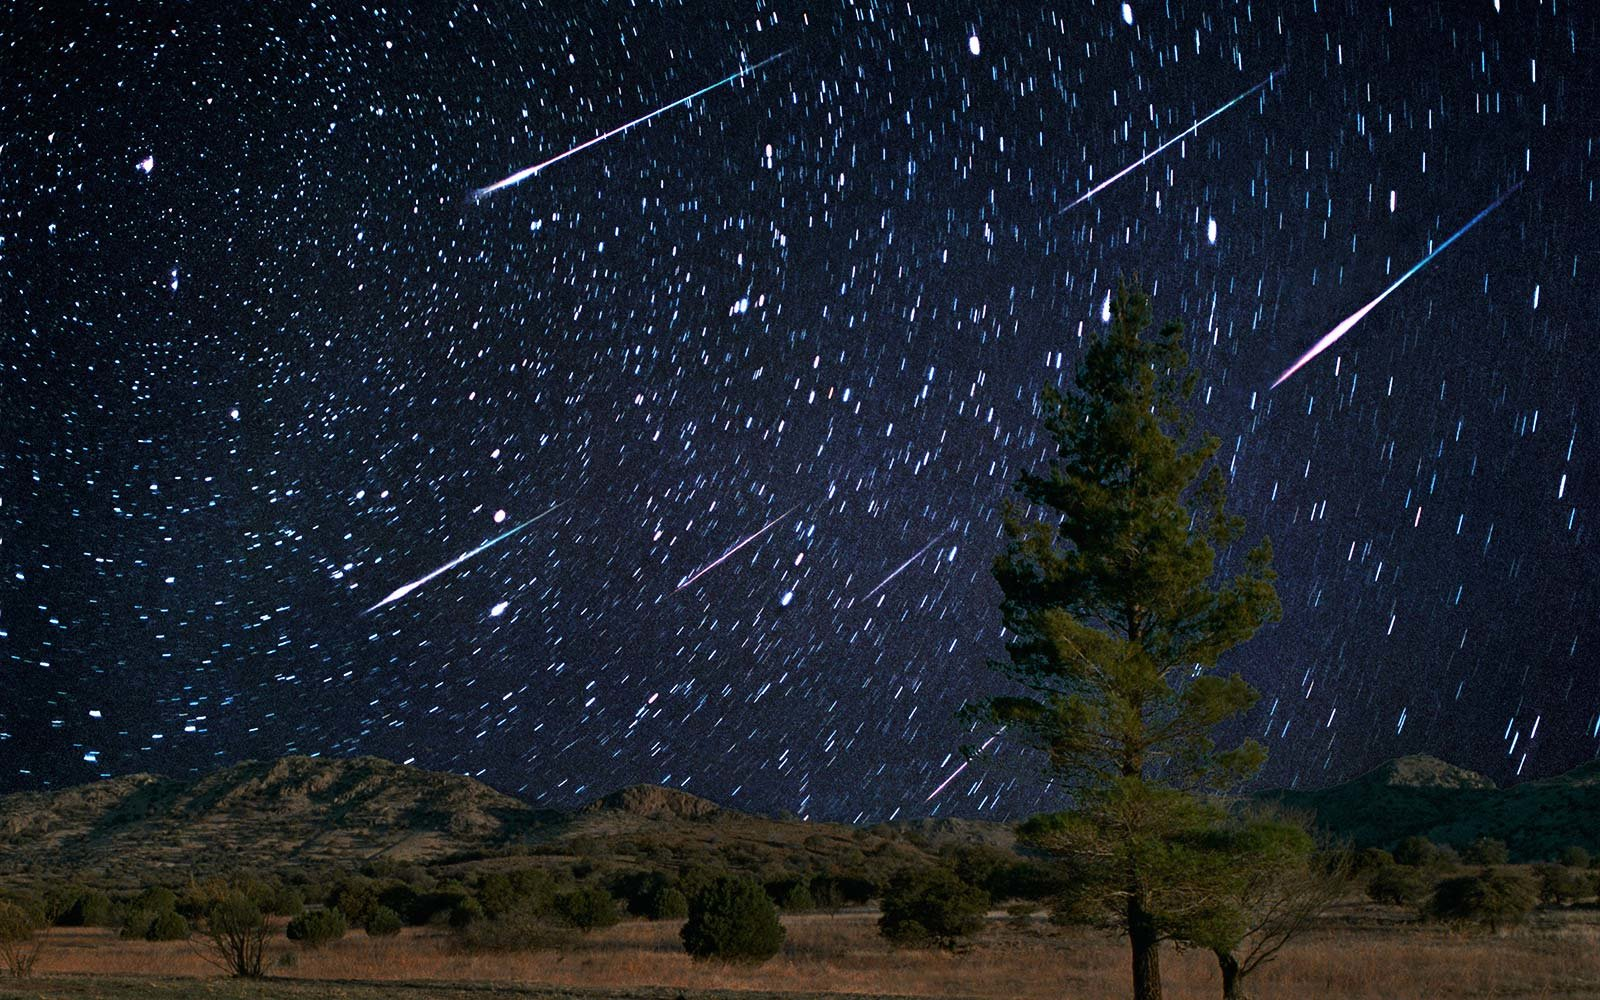 Tonight's Spectacular Meteor Shower Will Fill The Sky With